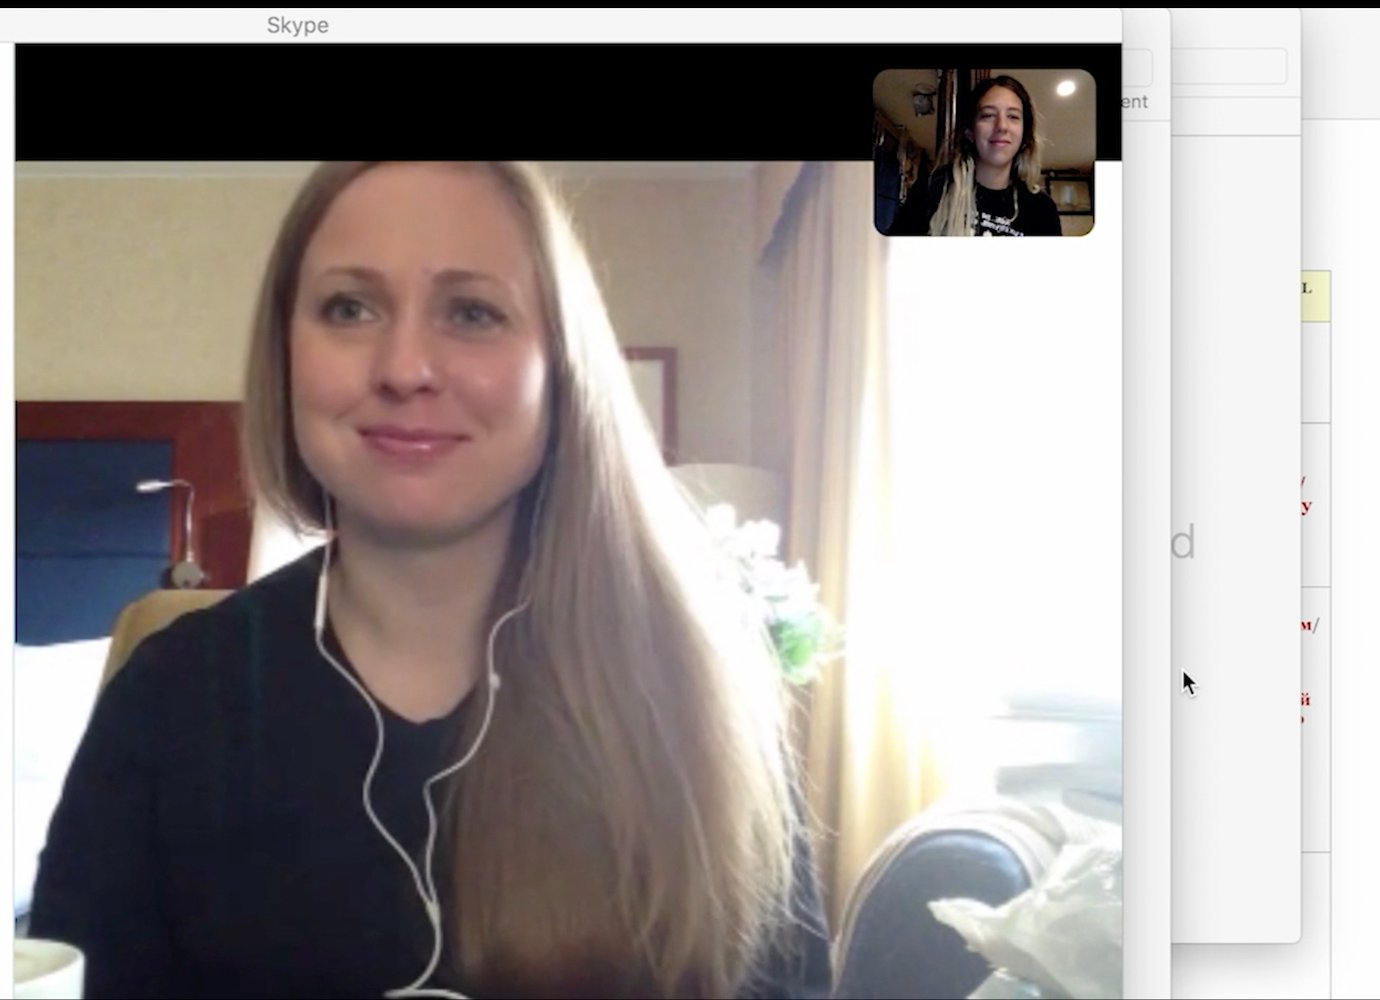 Watch a friendship blossom in real-time between an online Russian language tutor and her pupil